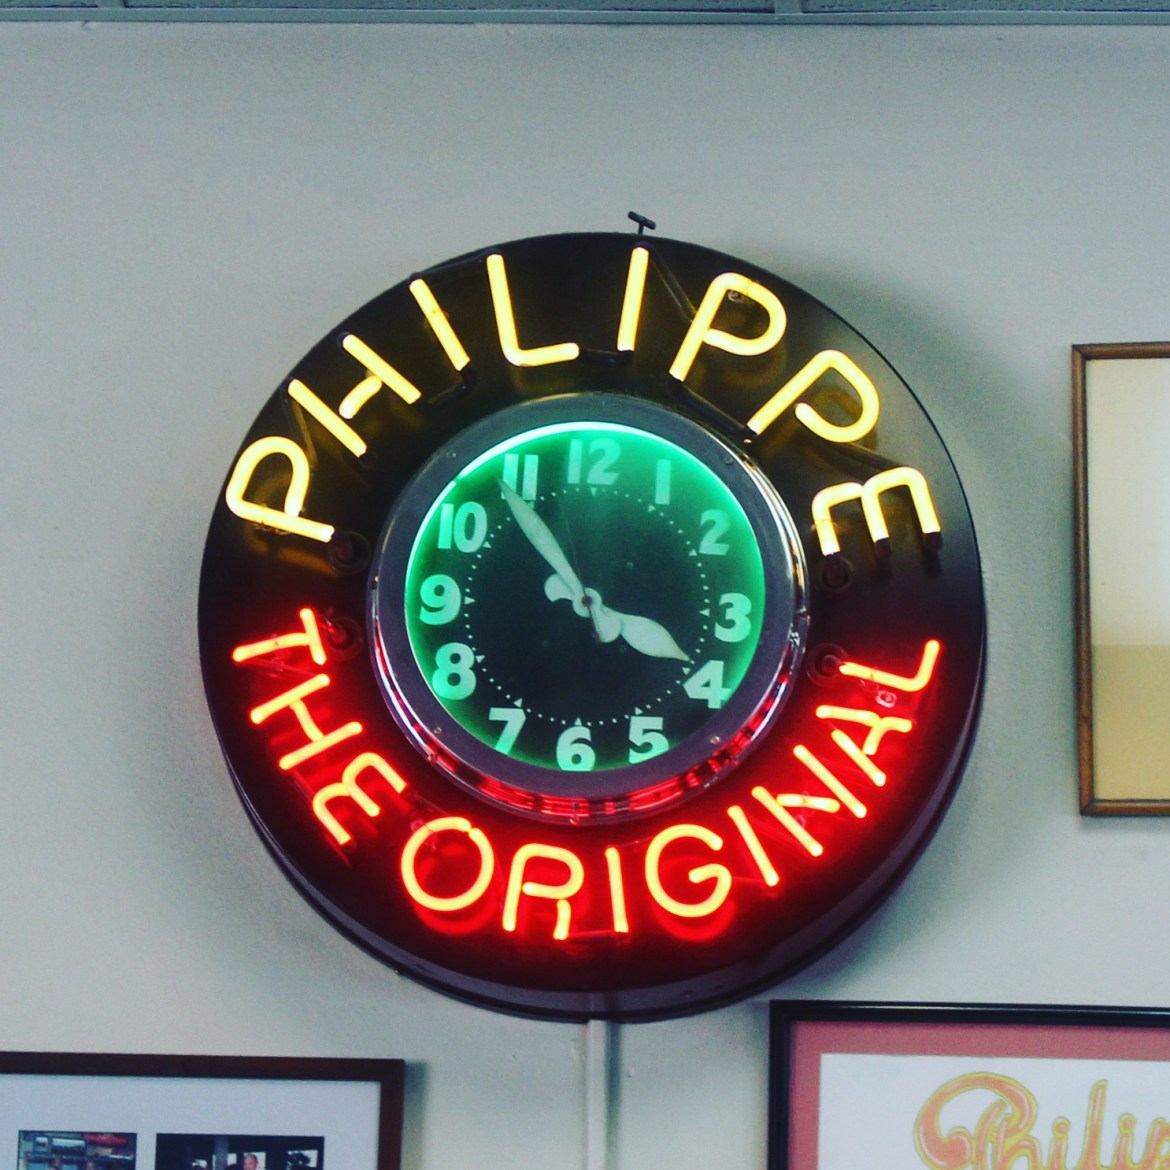 Established in 1908, Philippe's The Original is more than an iconic LA restaurant. It's also home of the original French dipped sandwich.